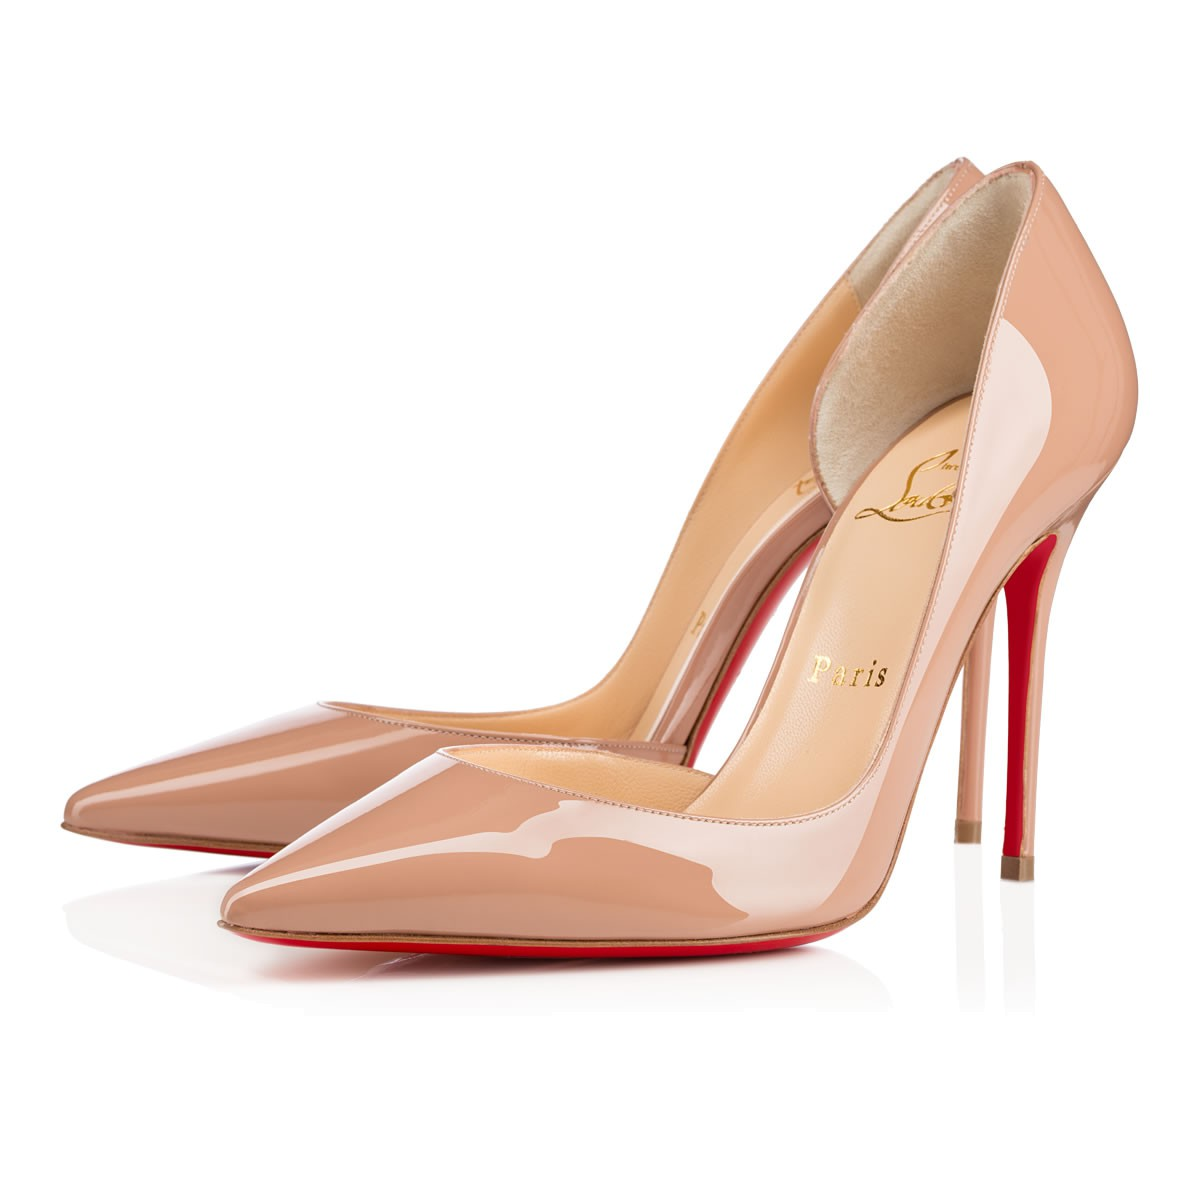 iriza 100 nude patent leather women shoes christian louboutin rh us christianlouboutin com